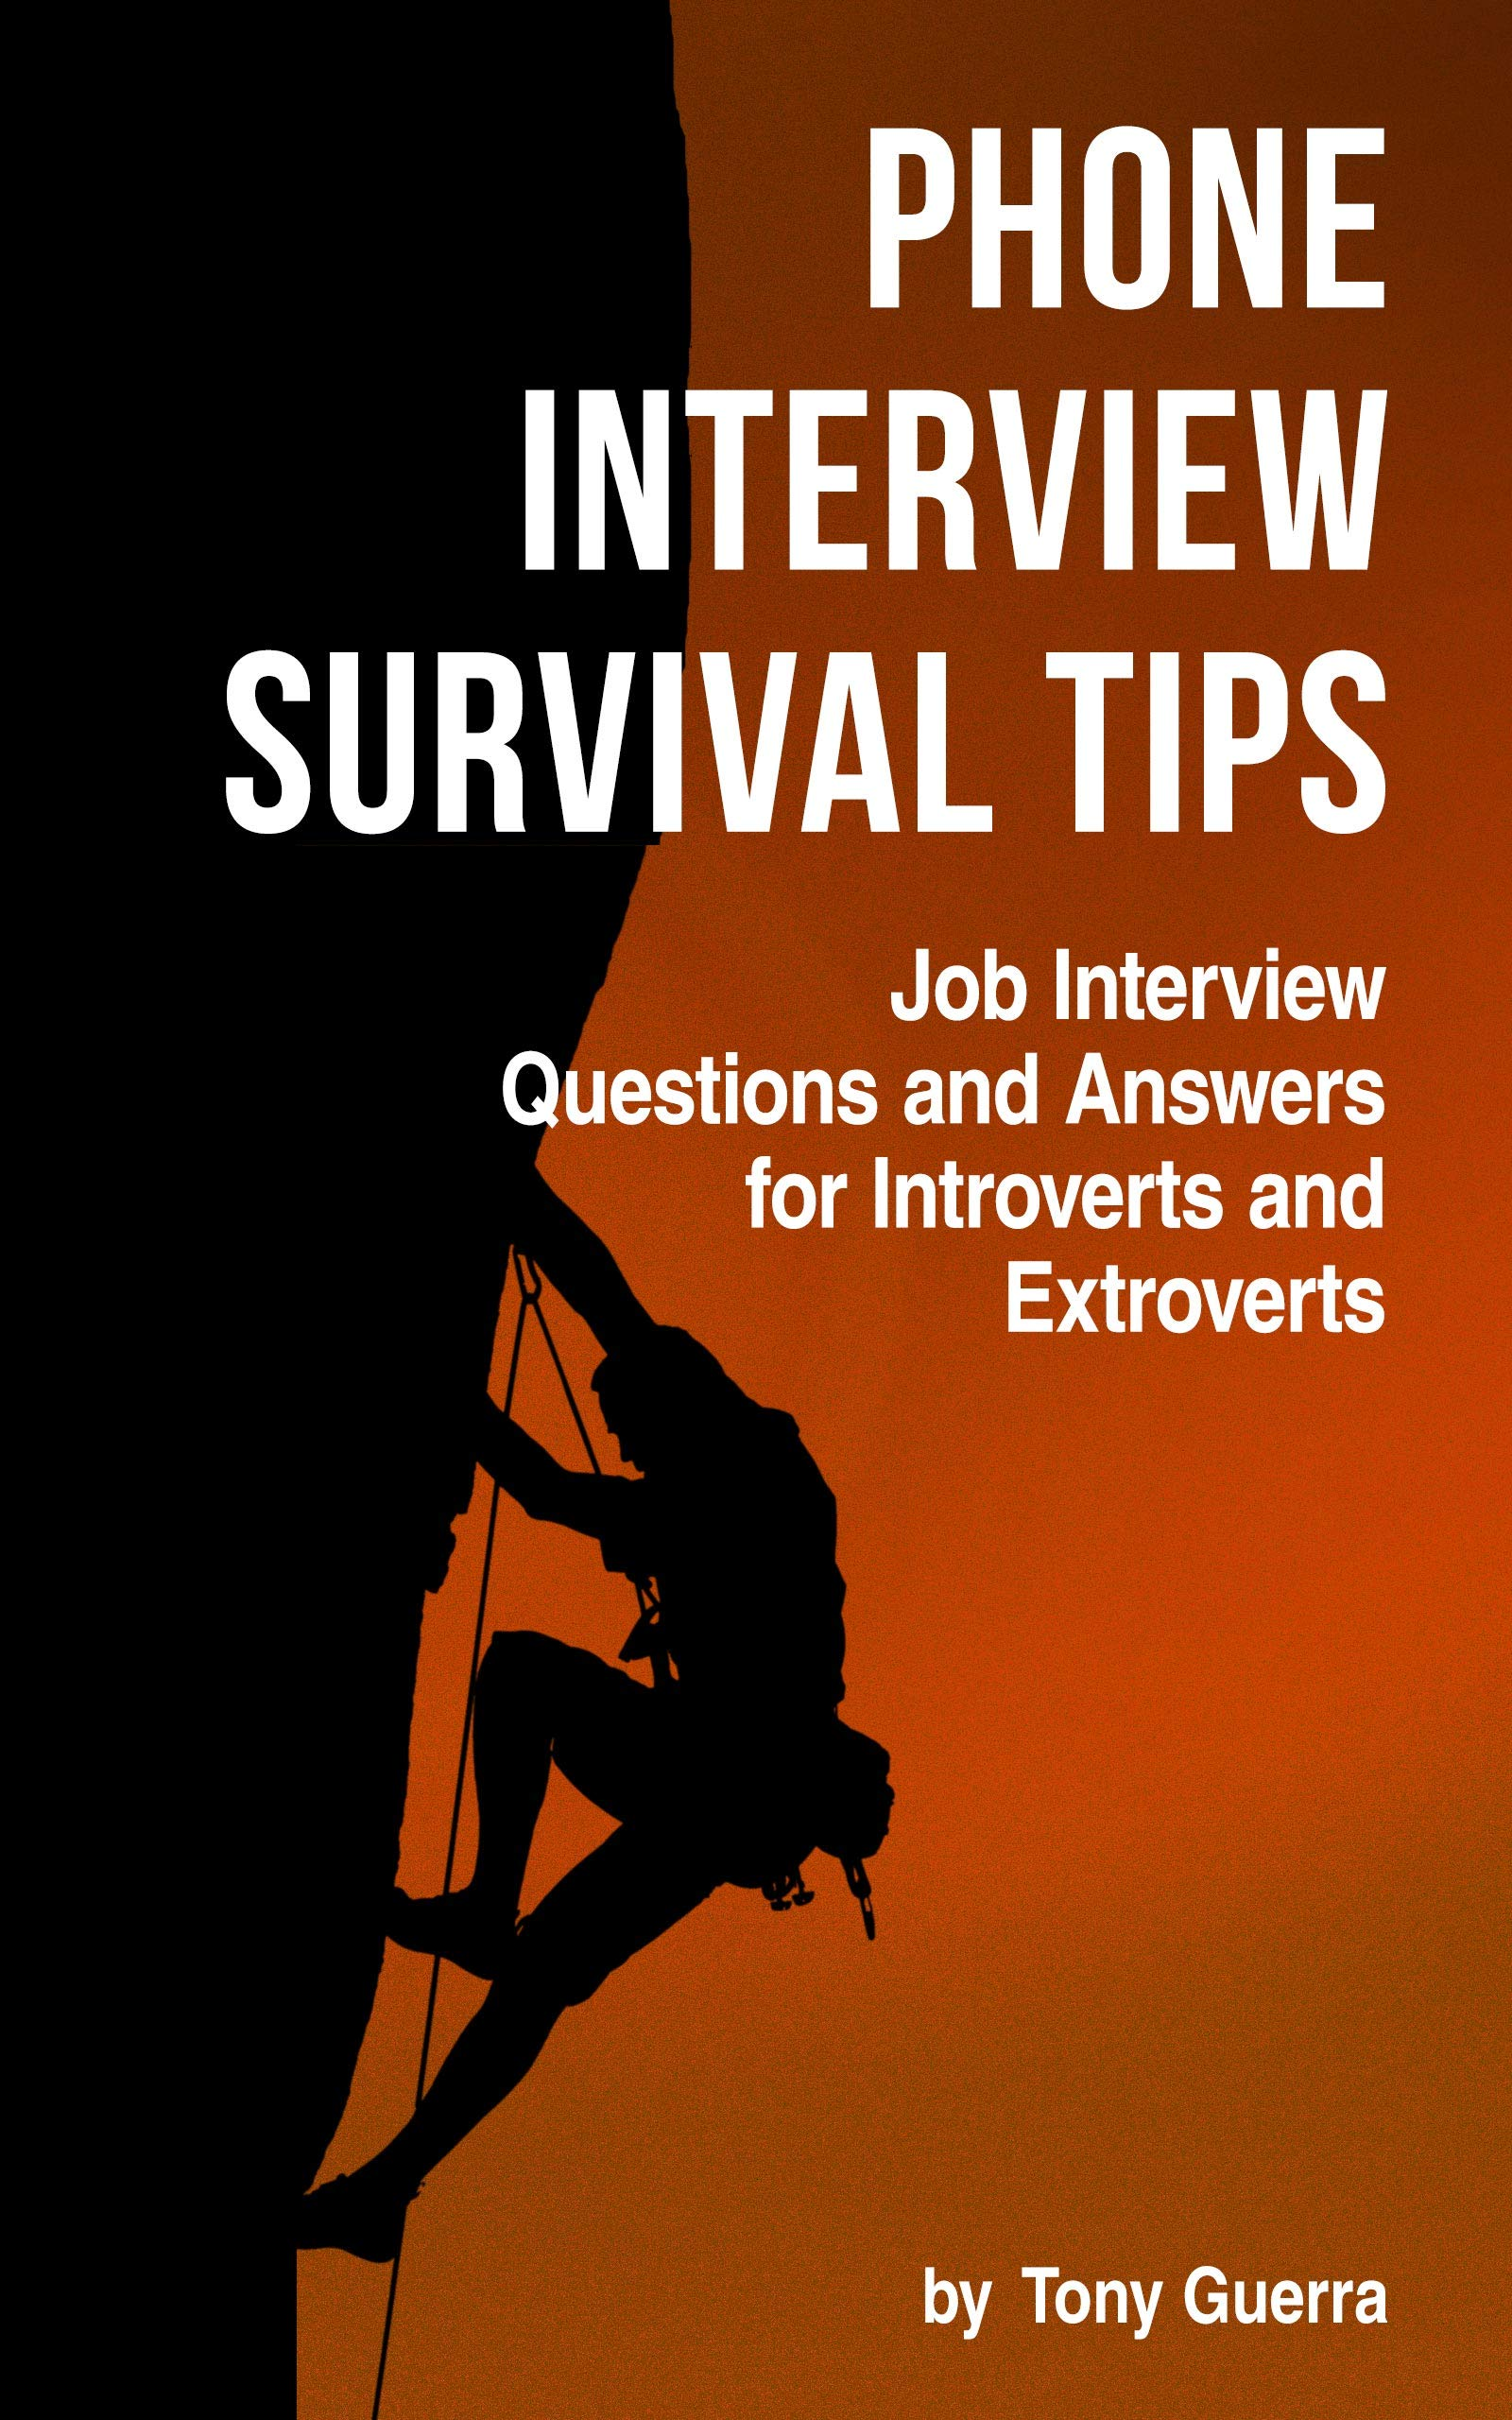 Phone Interview Survival Tips: Job Interview Questions and Answers for Introverts and Extroverts